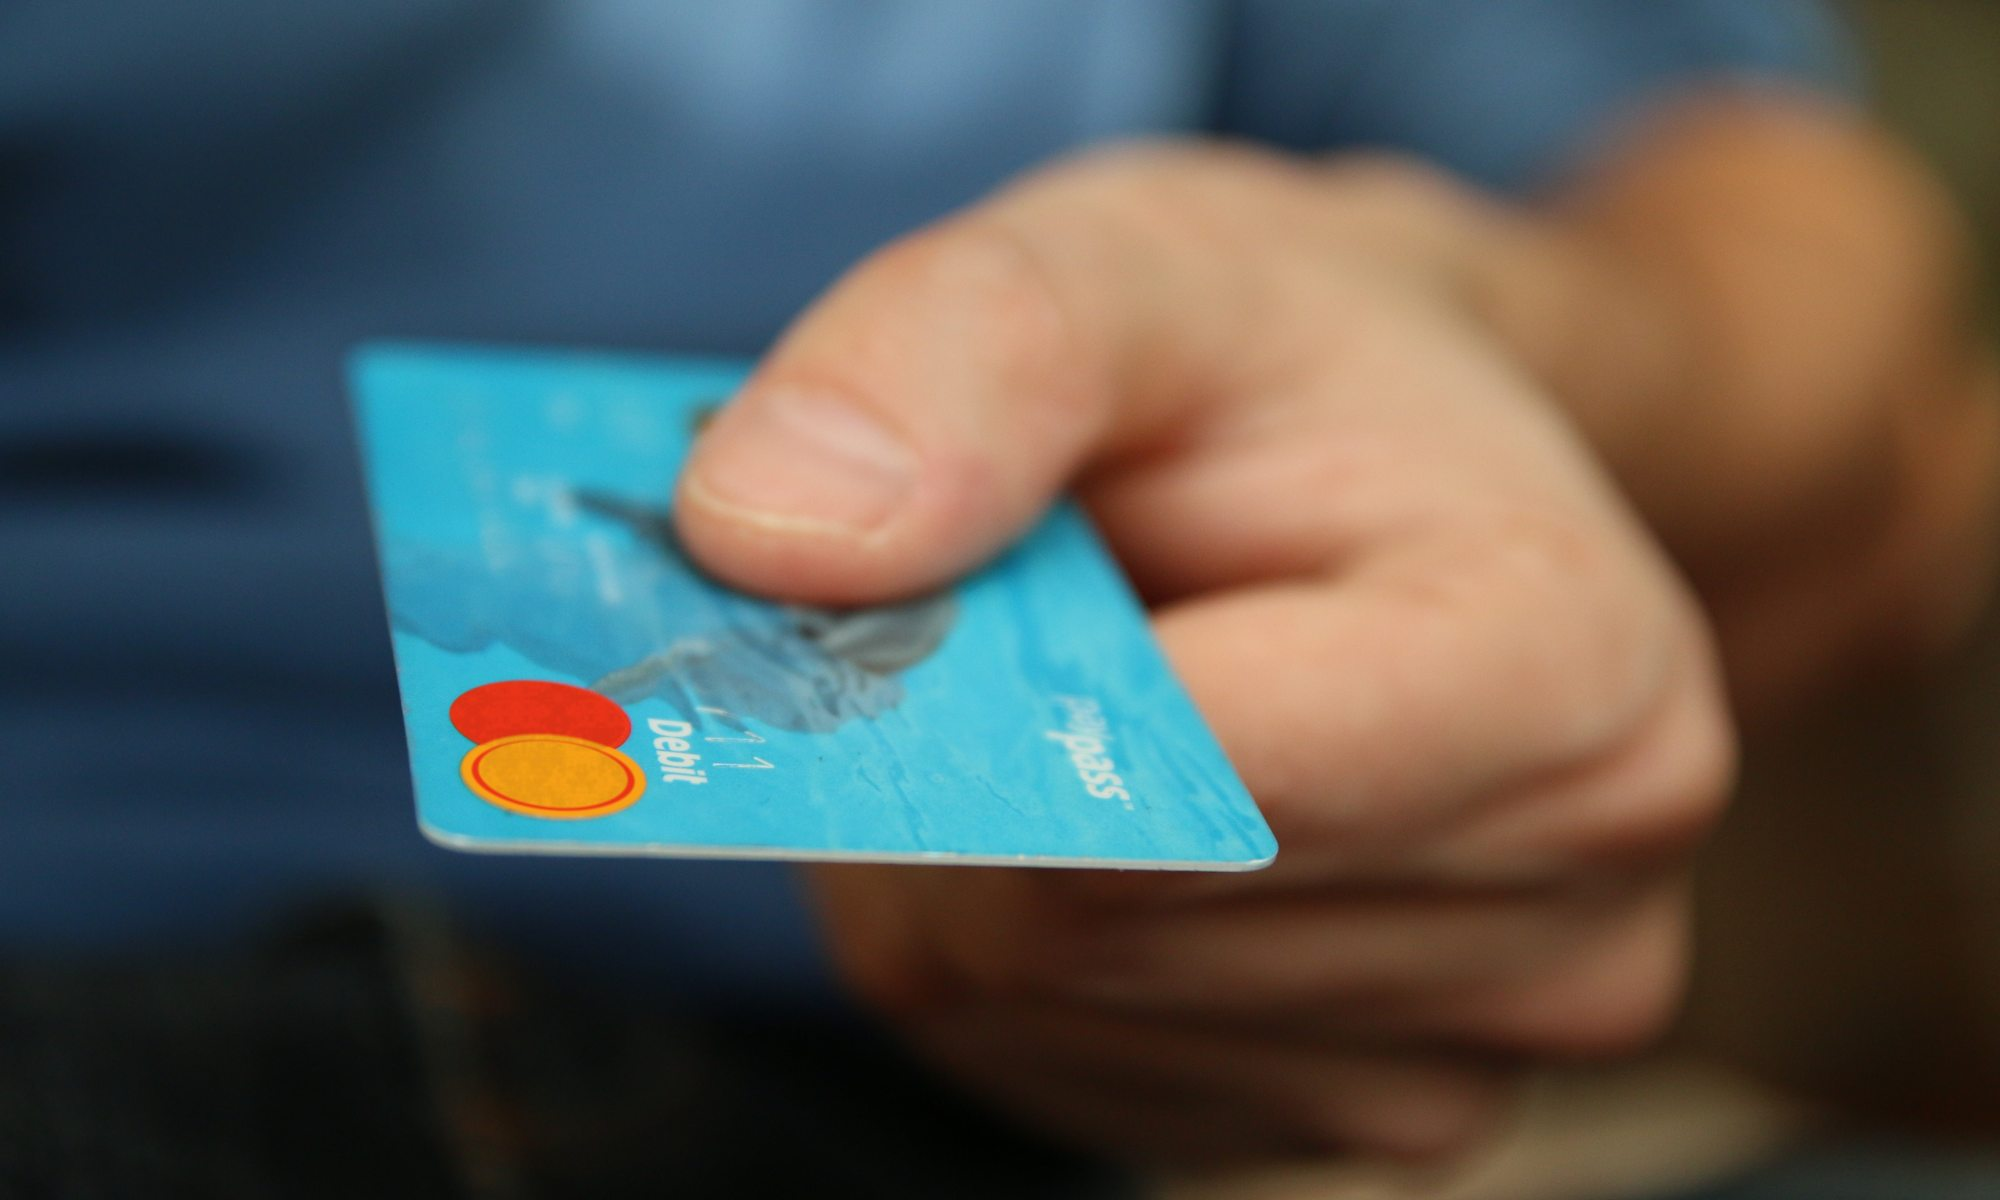 picture showing a hand holding out a debit card